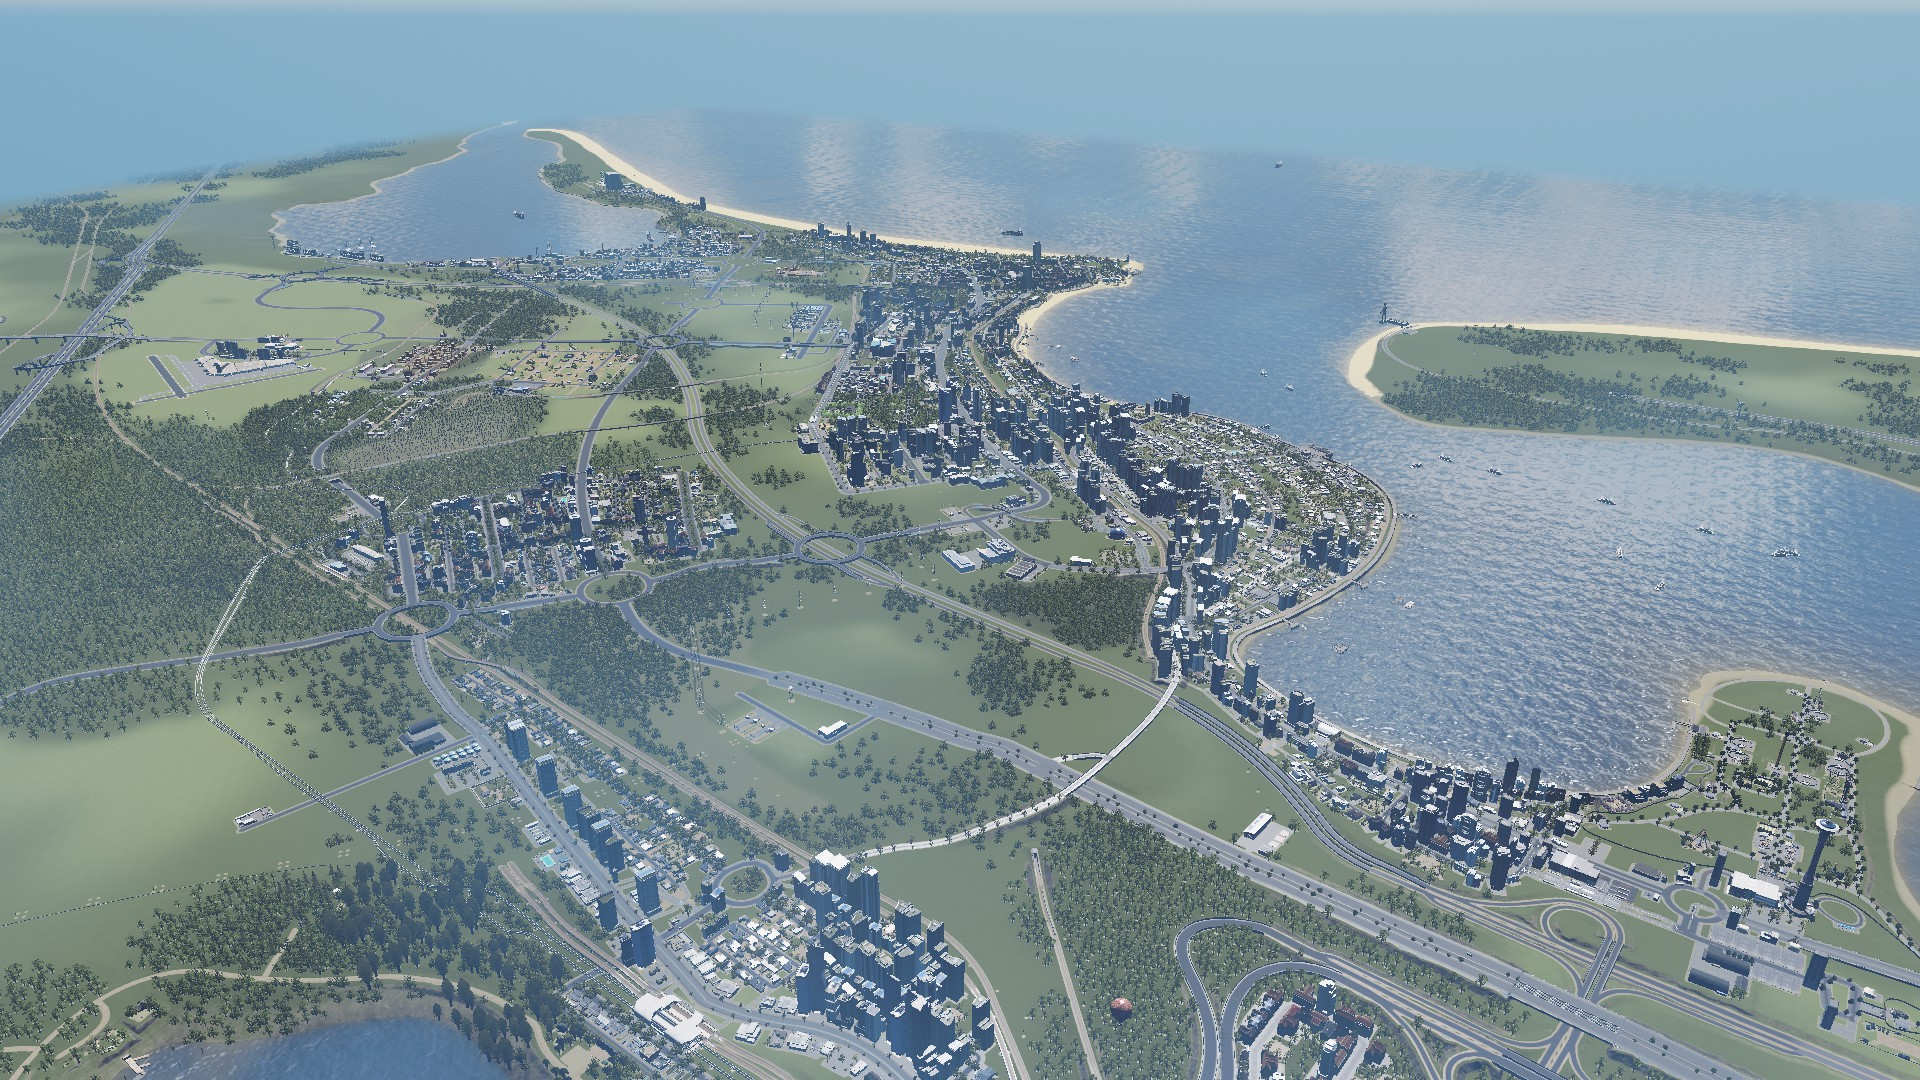 Social Planning Explained (Or Rather BEHAVIOURAL SCIENCE): How #CitiesSkylines Can Give a Basic Breakdown of Social Planning